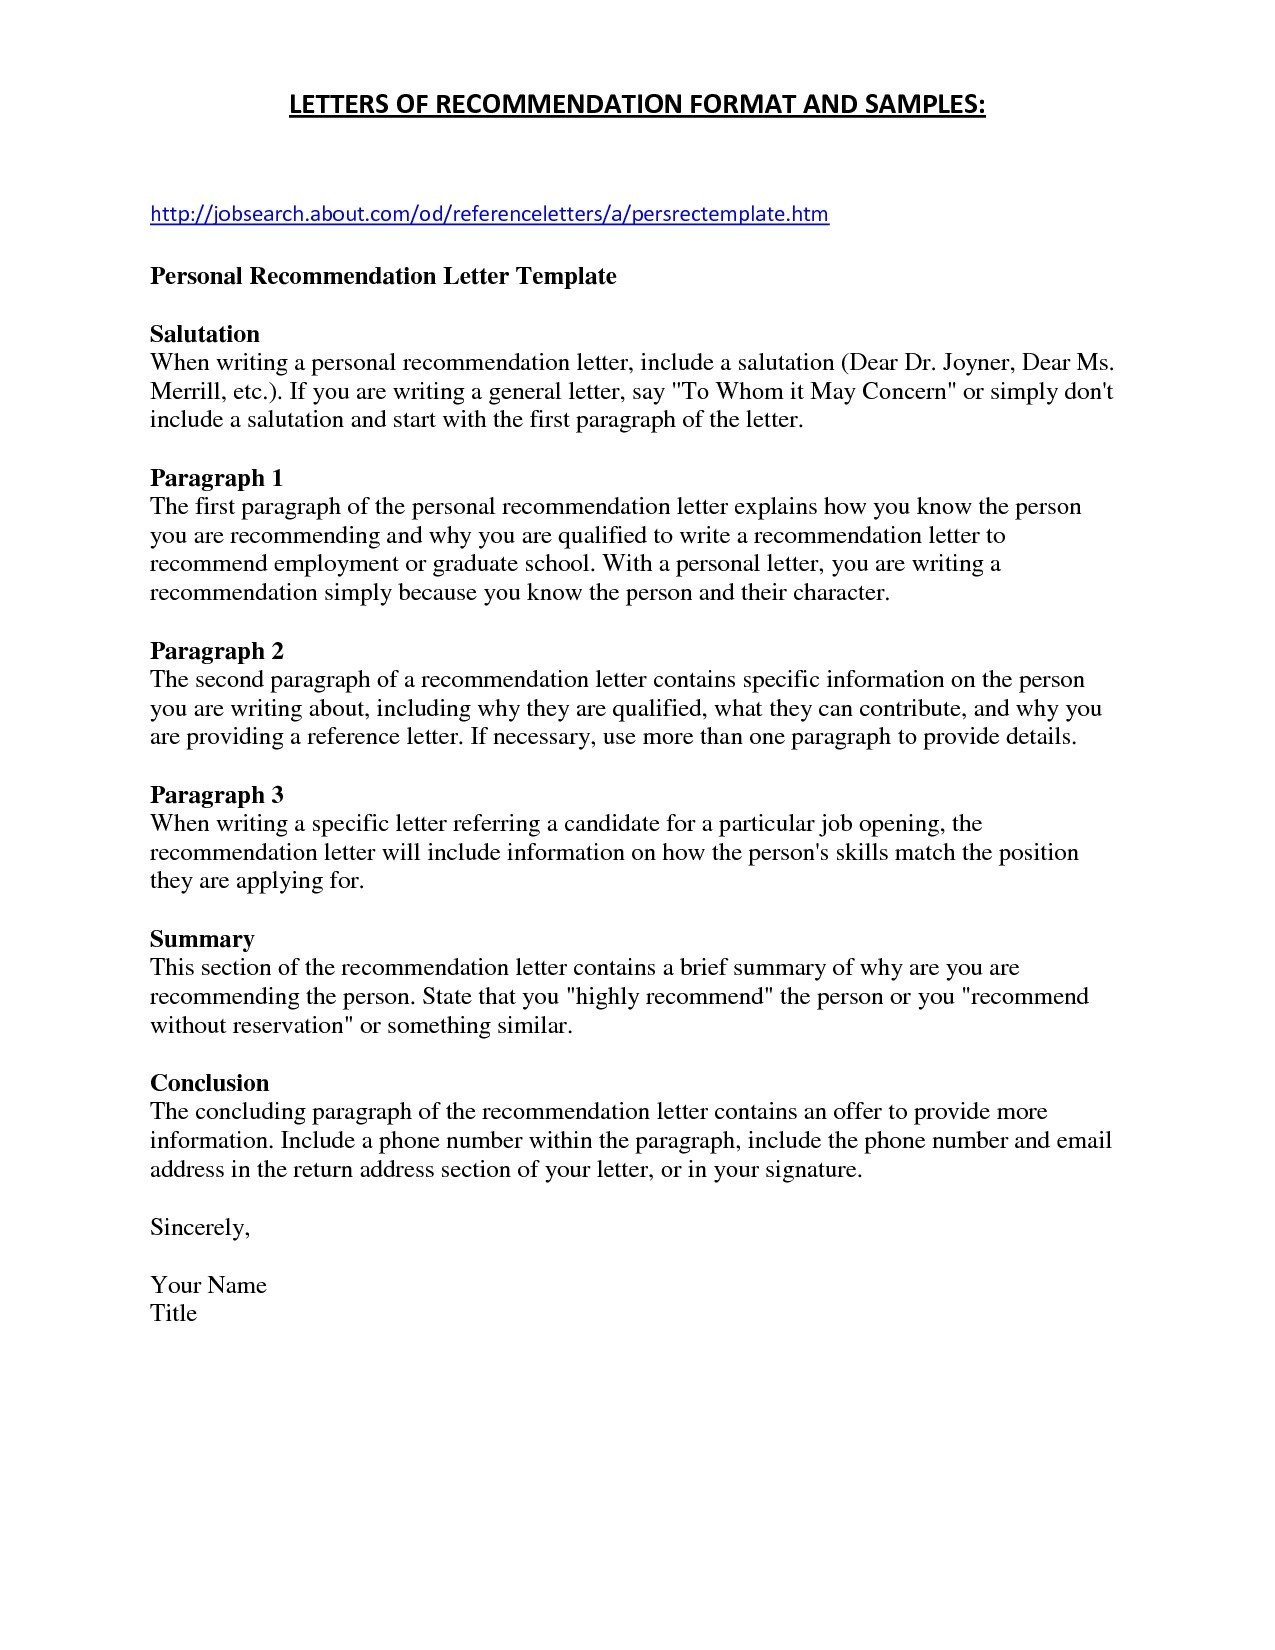 Letter Of Intent Template Word - Letter Intent Template Word New Letter format for School